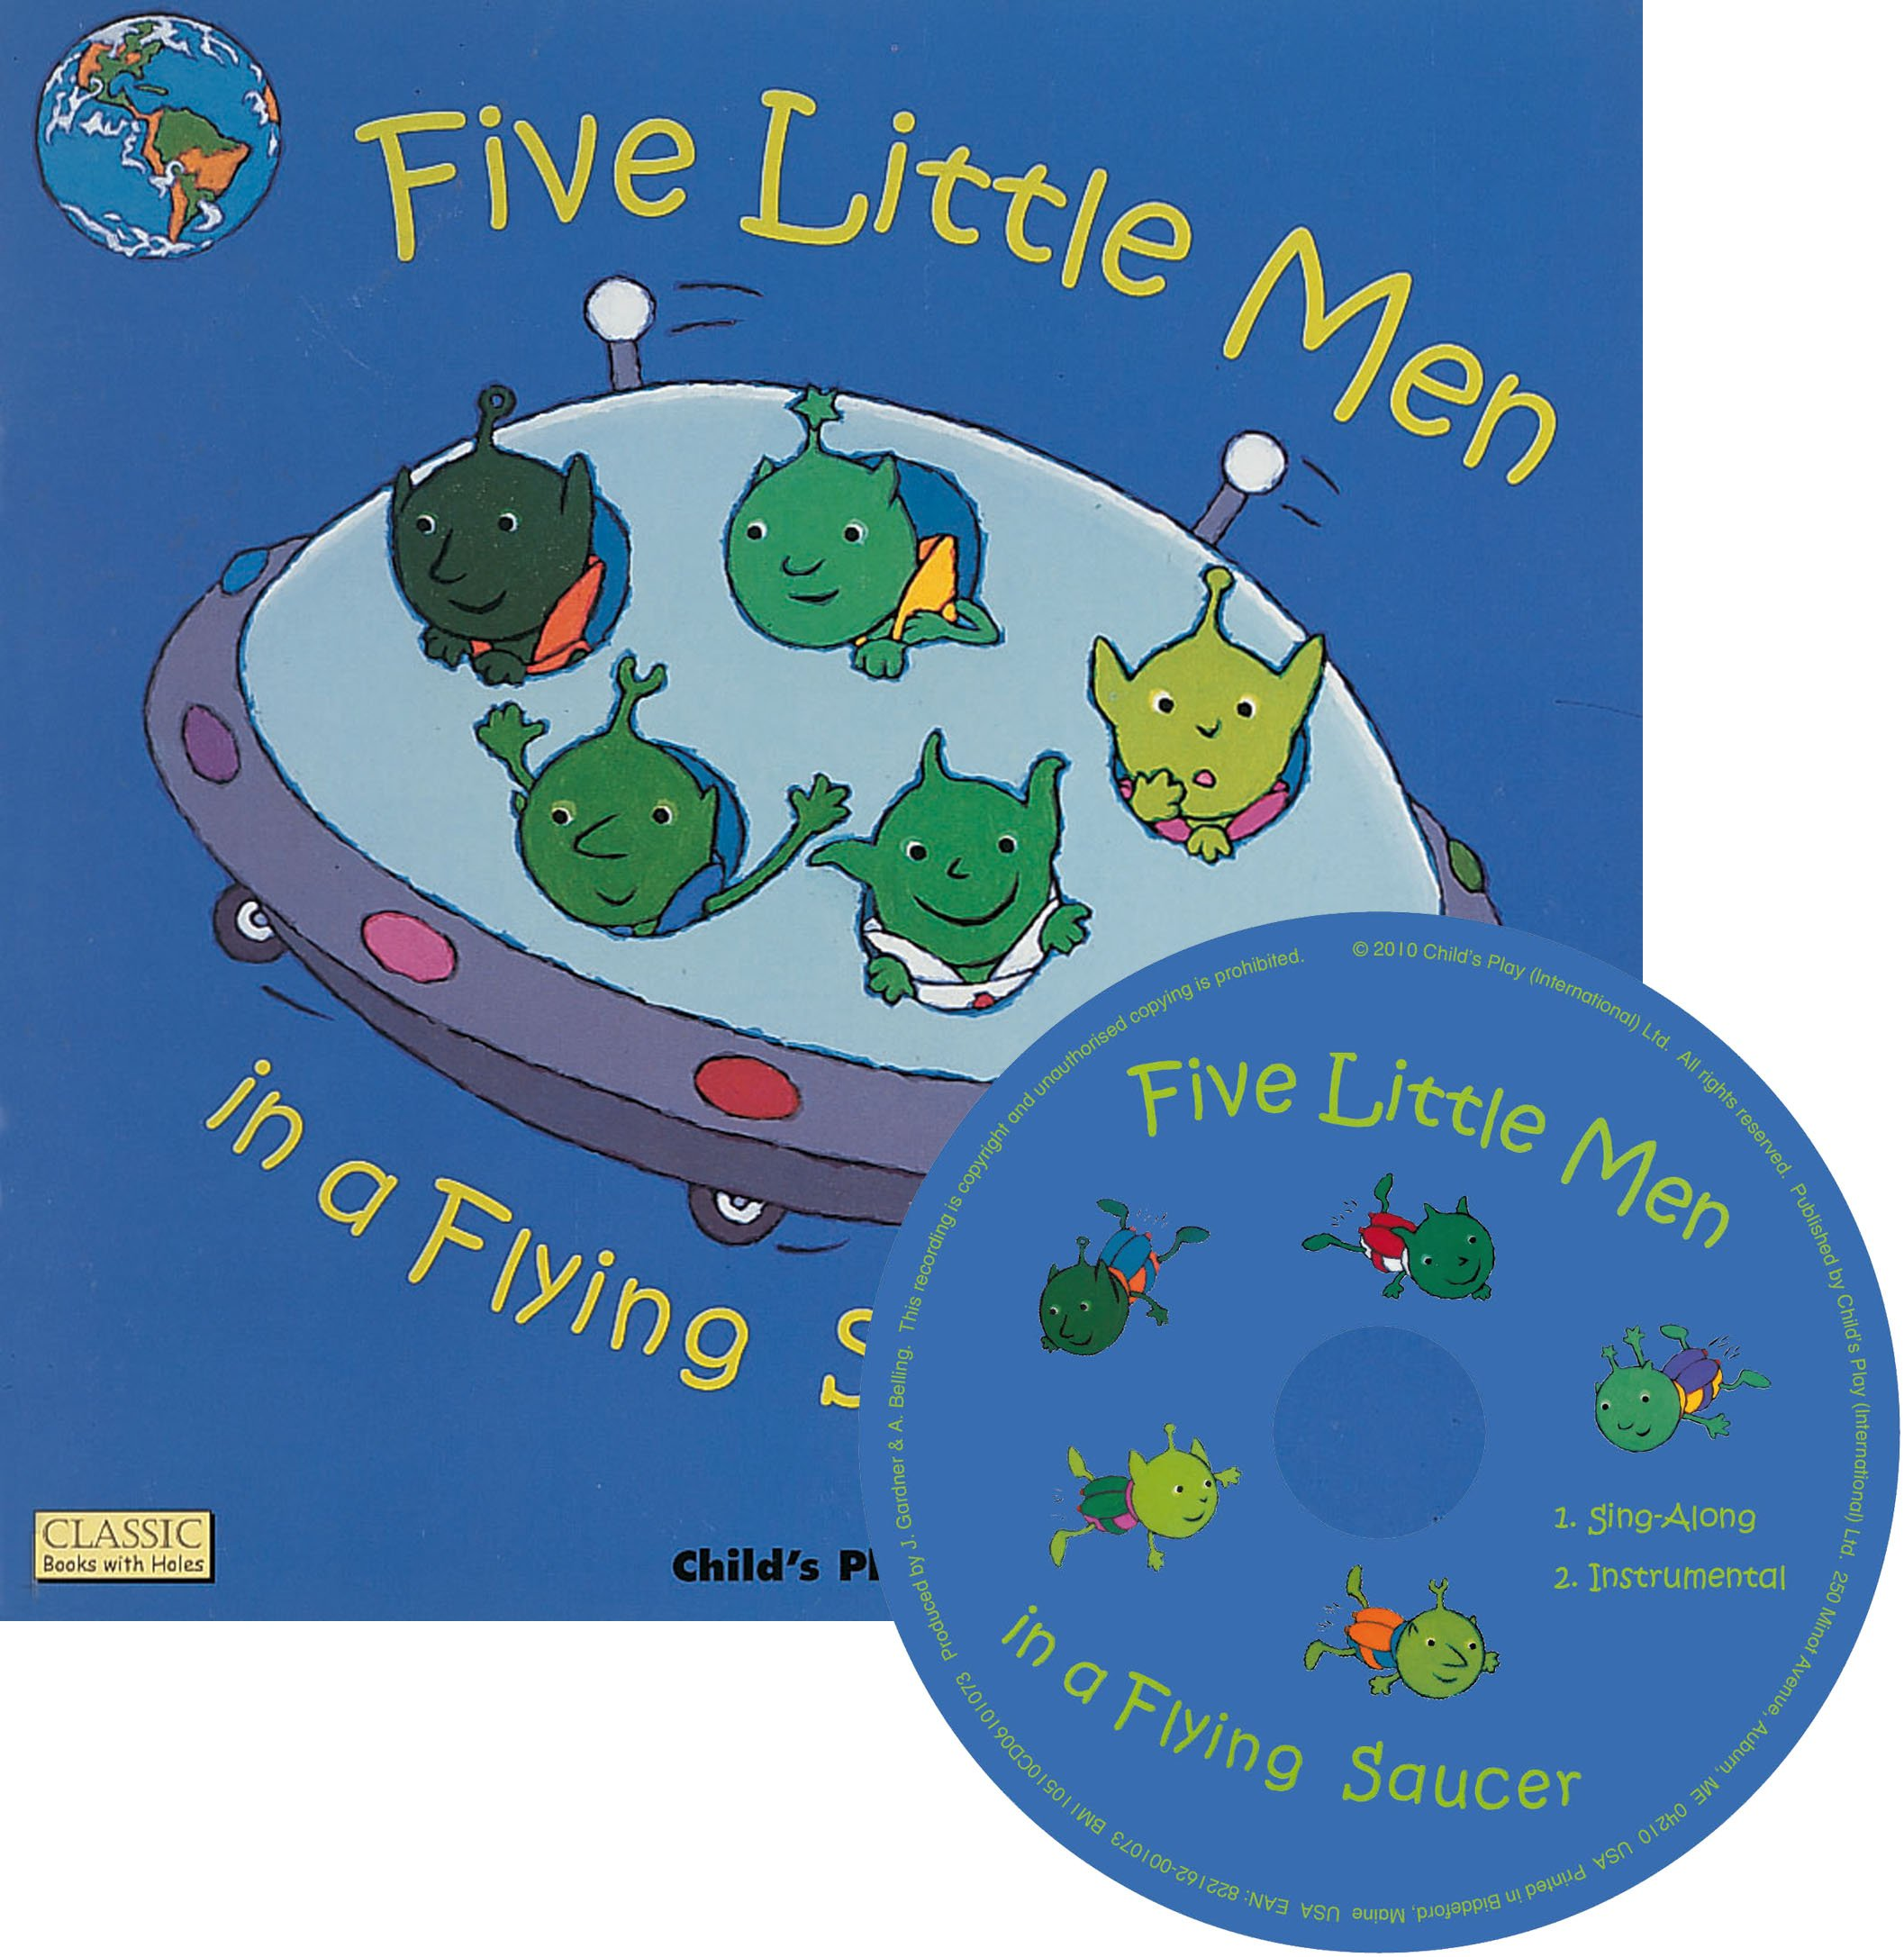 Download Five Little Men In A Flying Saucer (Classic Books with Holes) pdf